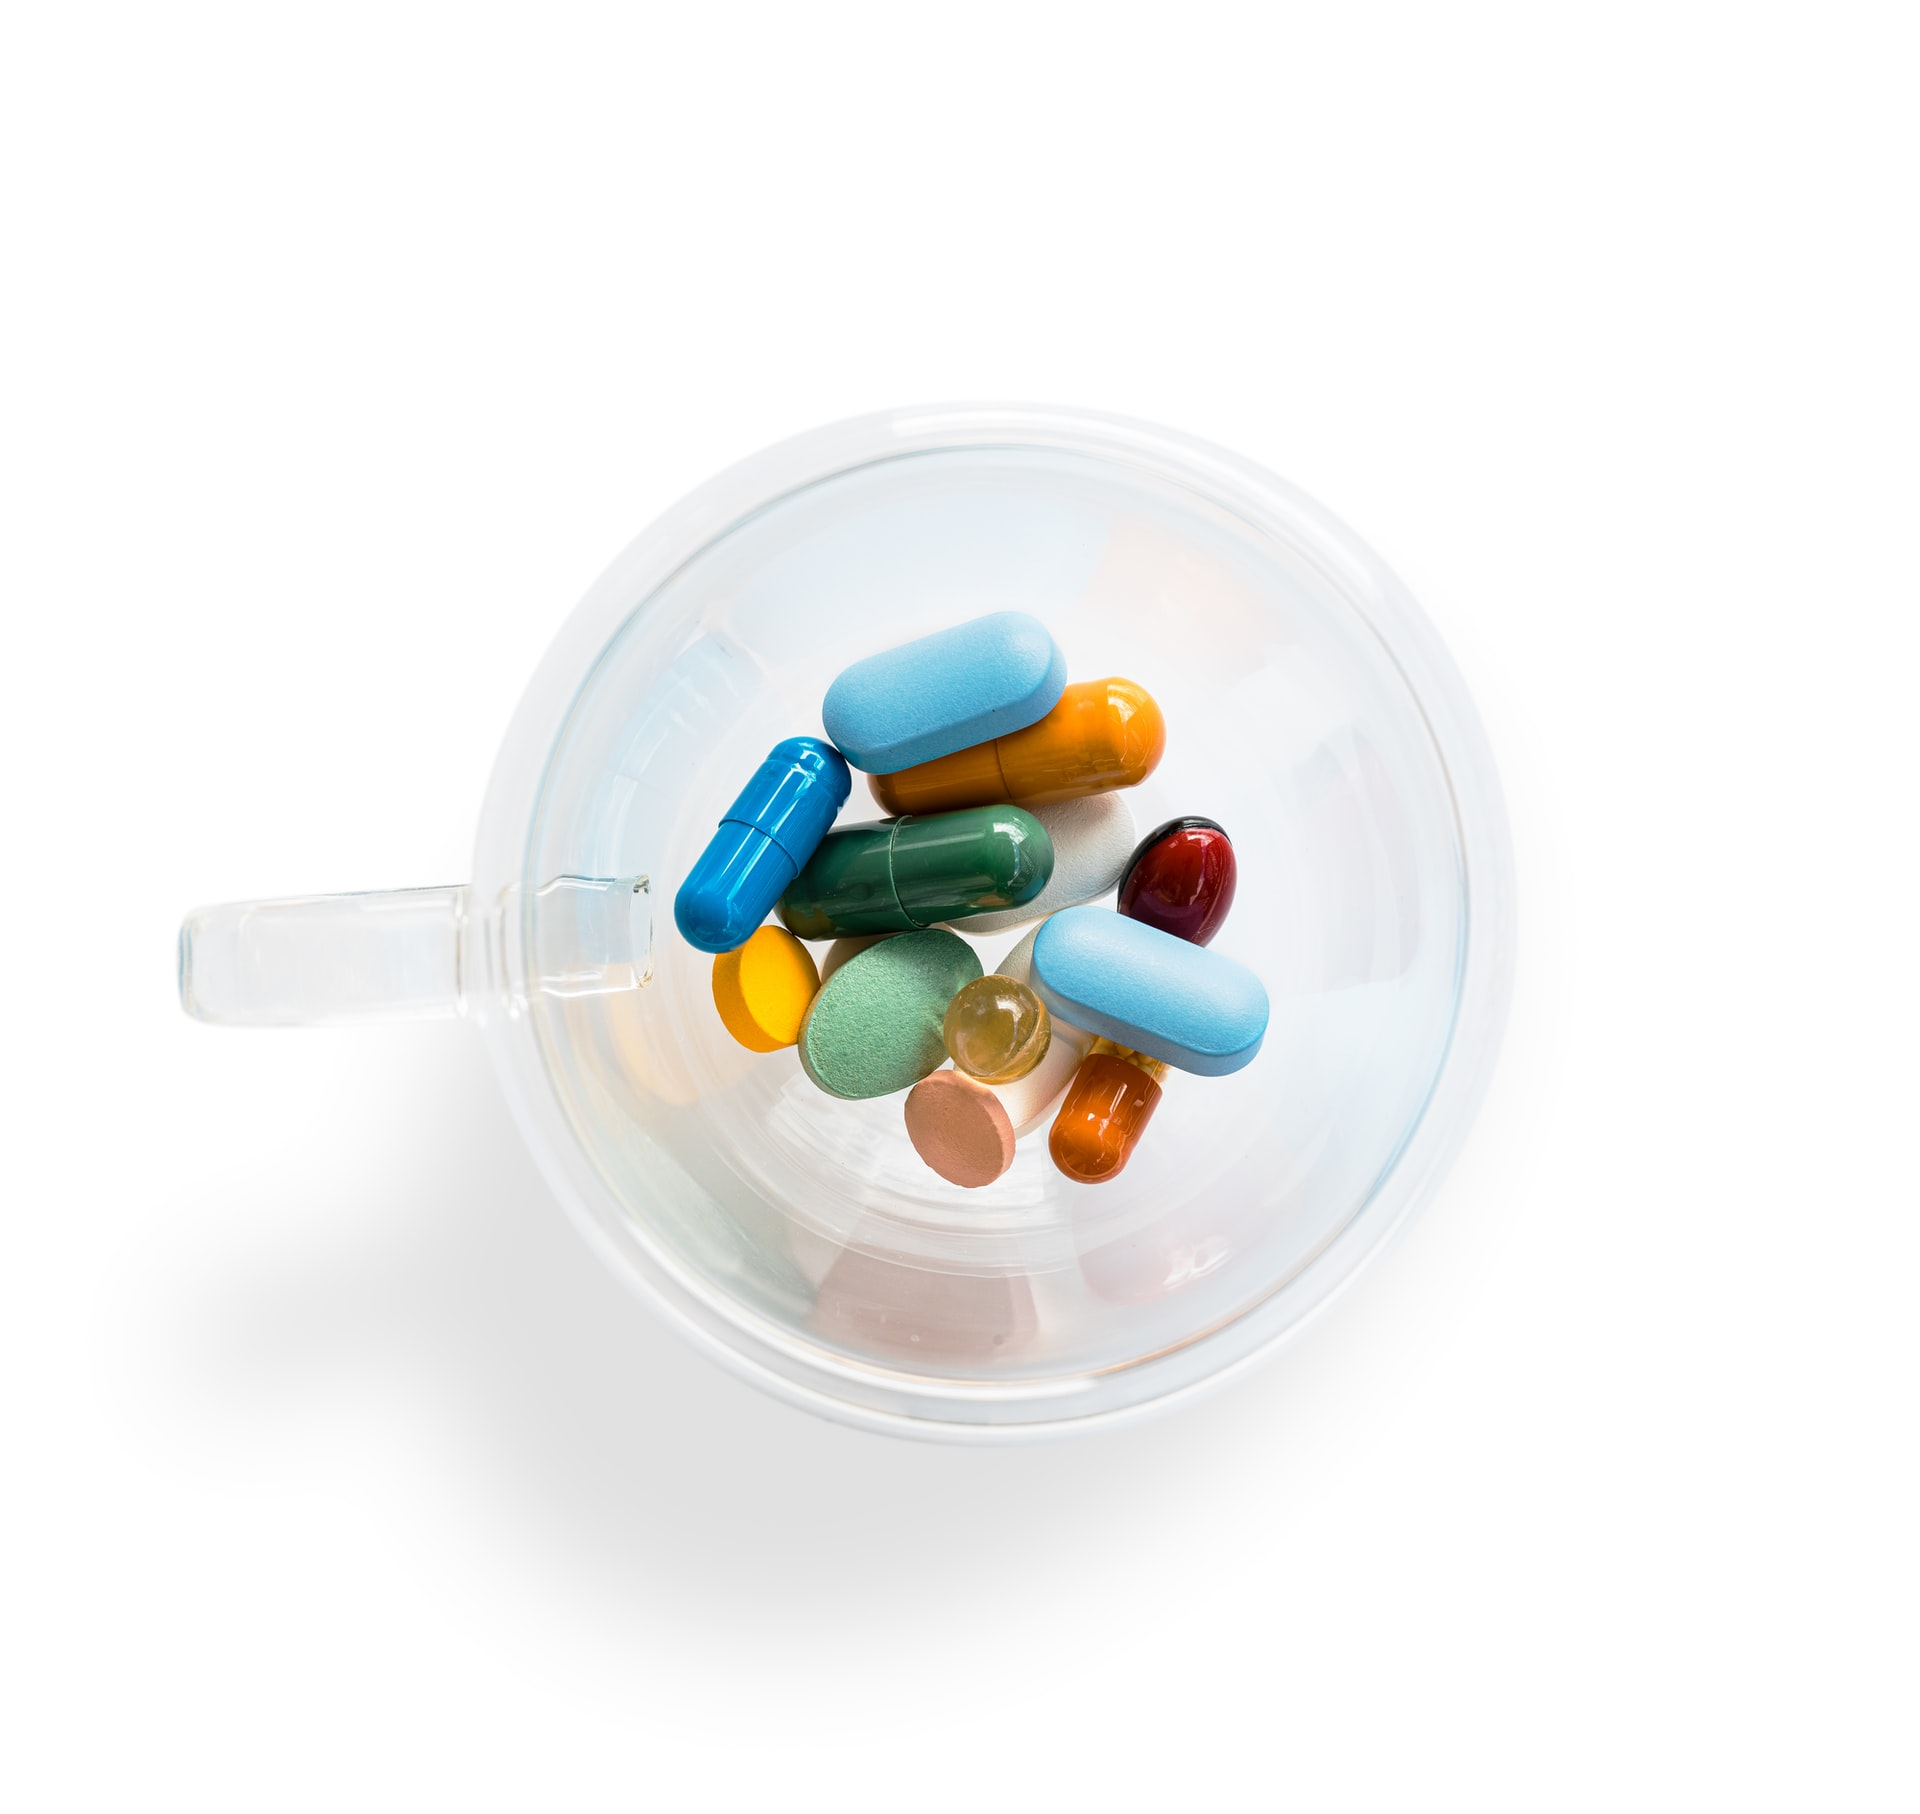 About Customized Medication Header Image